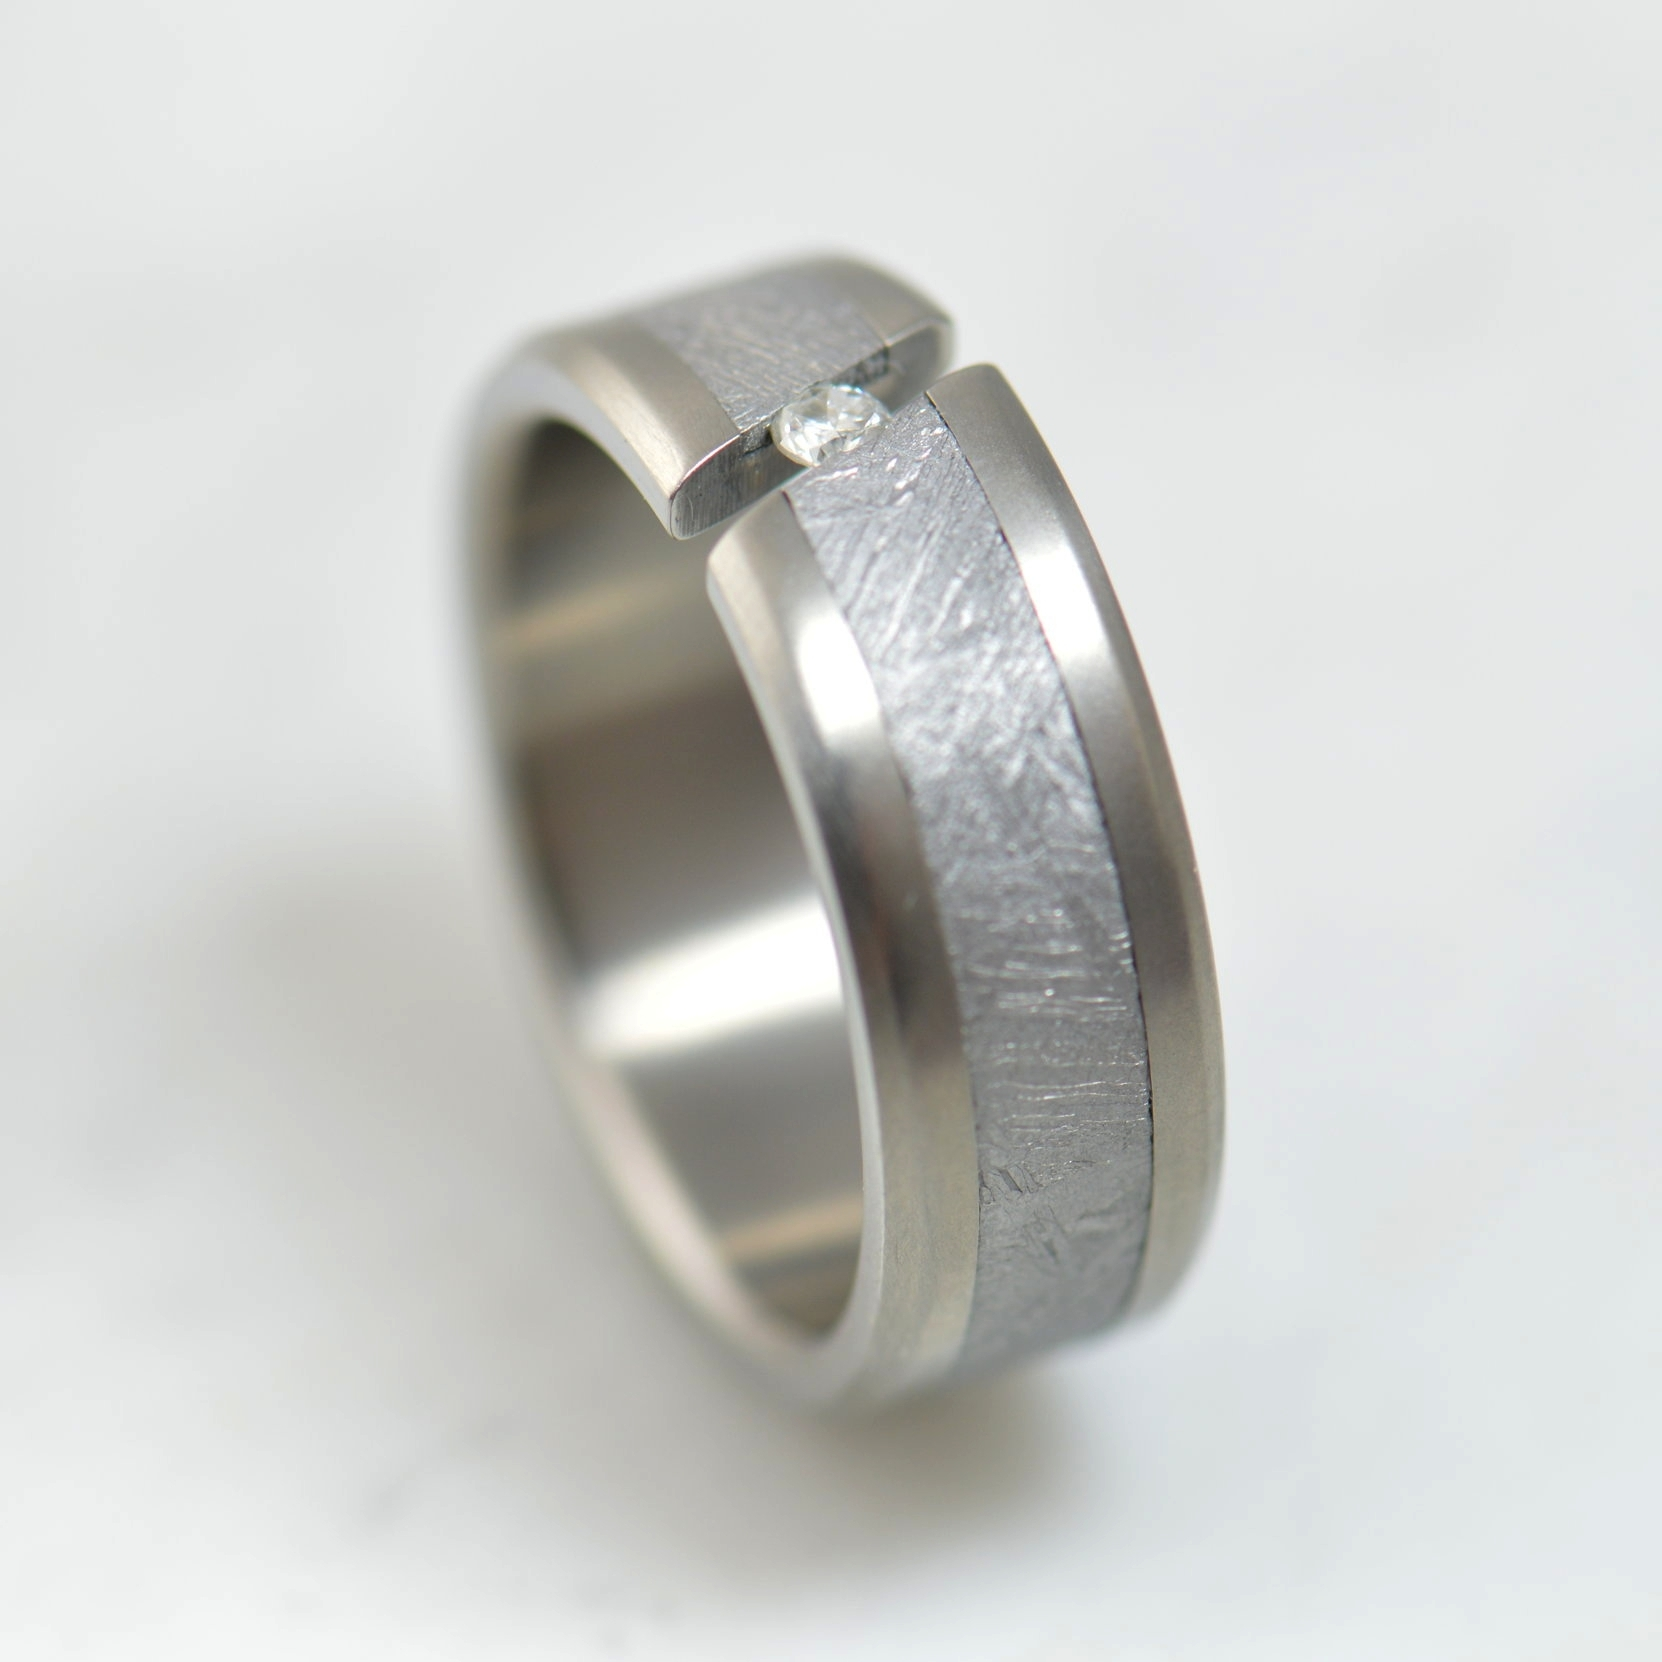 darvier-meteorite-tension-set-moissanite-ring.JPG